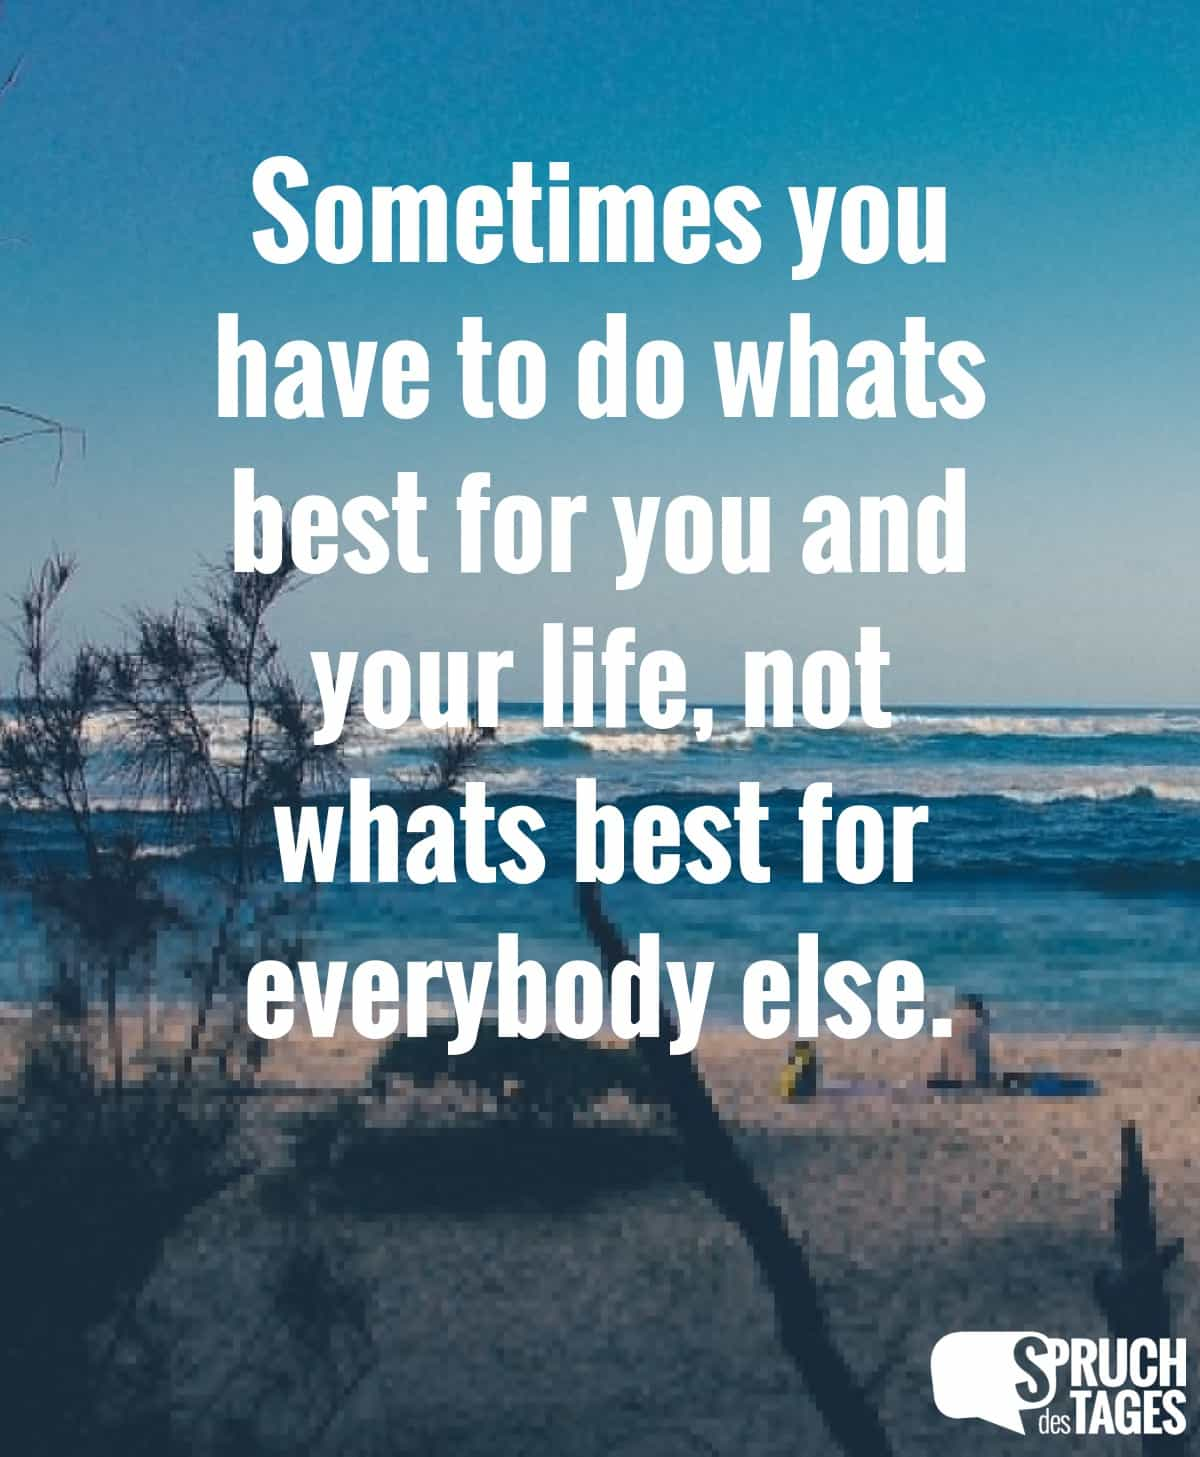 Sometimes you have to do whats best for you and your life, not